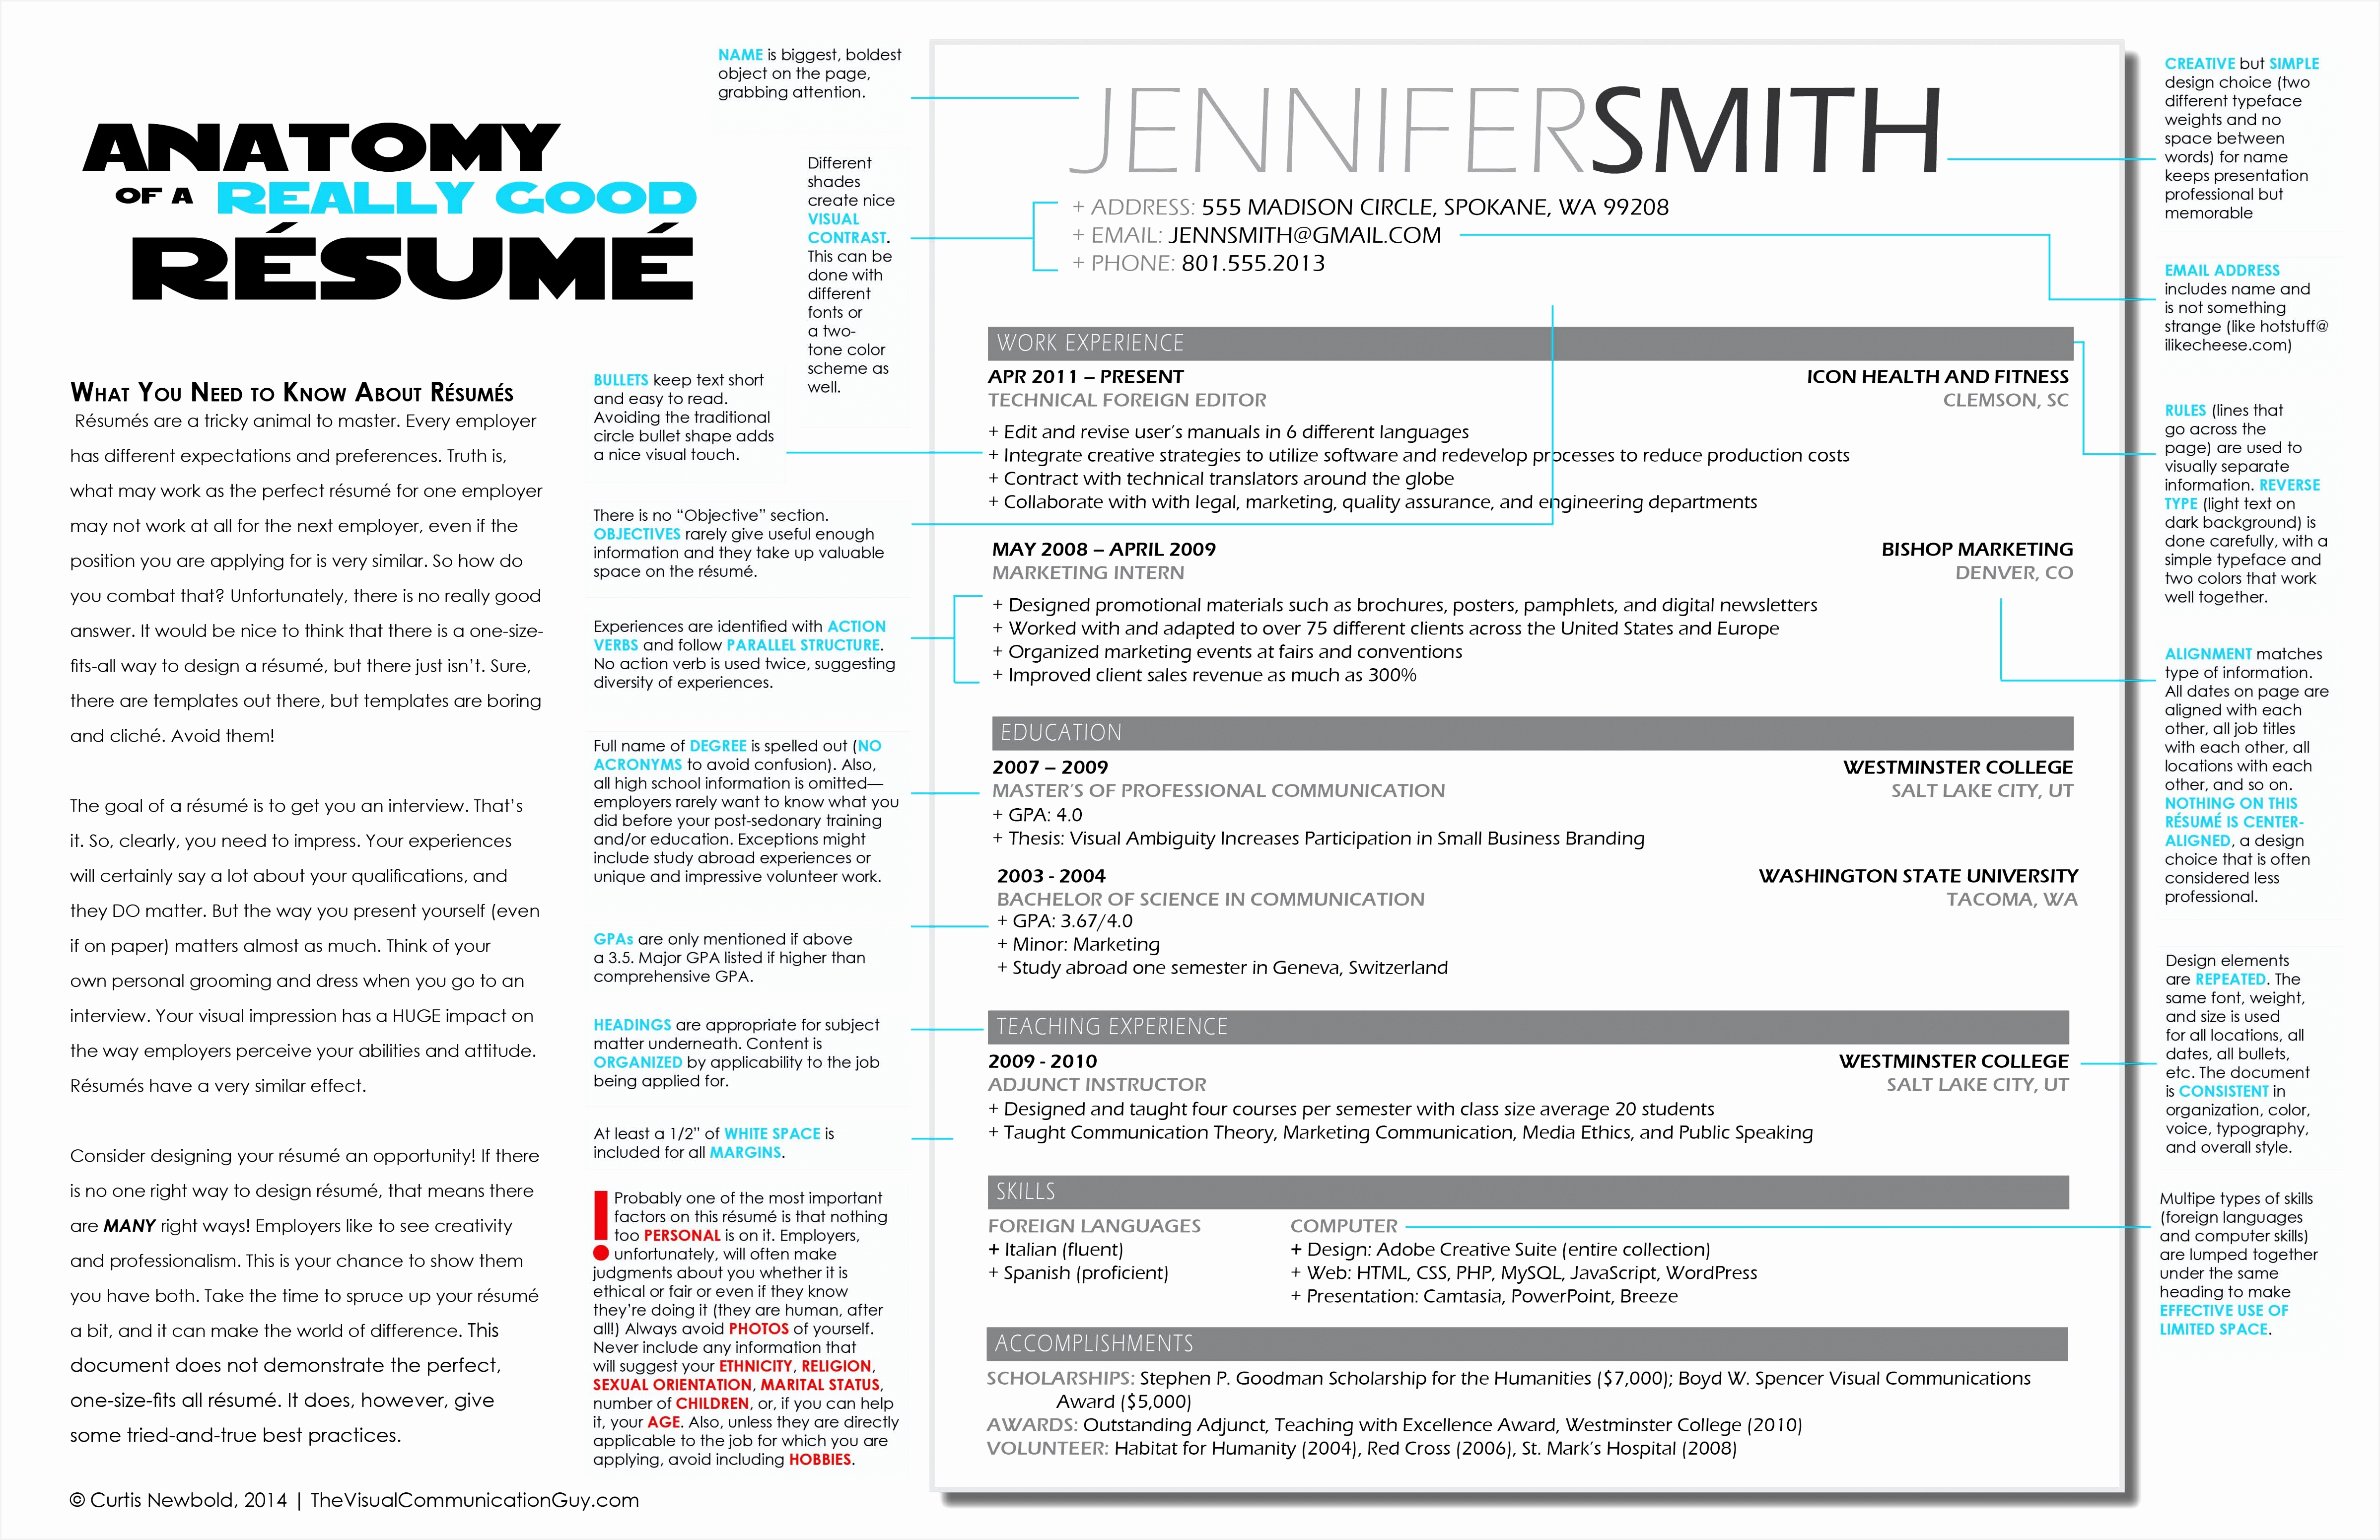 Examples Resumes for Jobs C9mnh Best Of Job Title Examples for Resume Awesome Typing A Resume Beautiful31024794